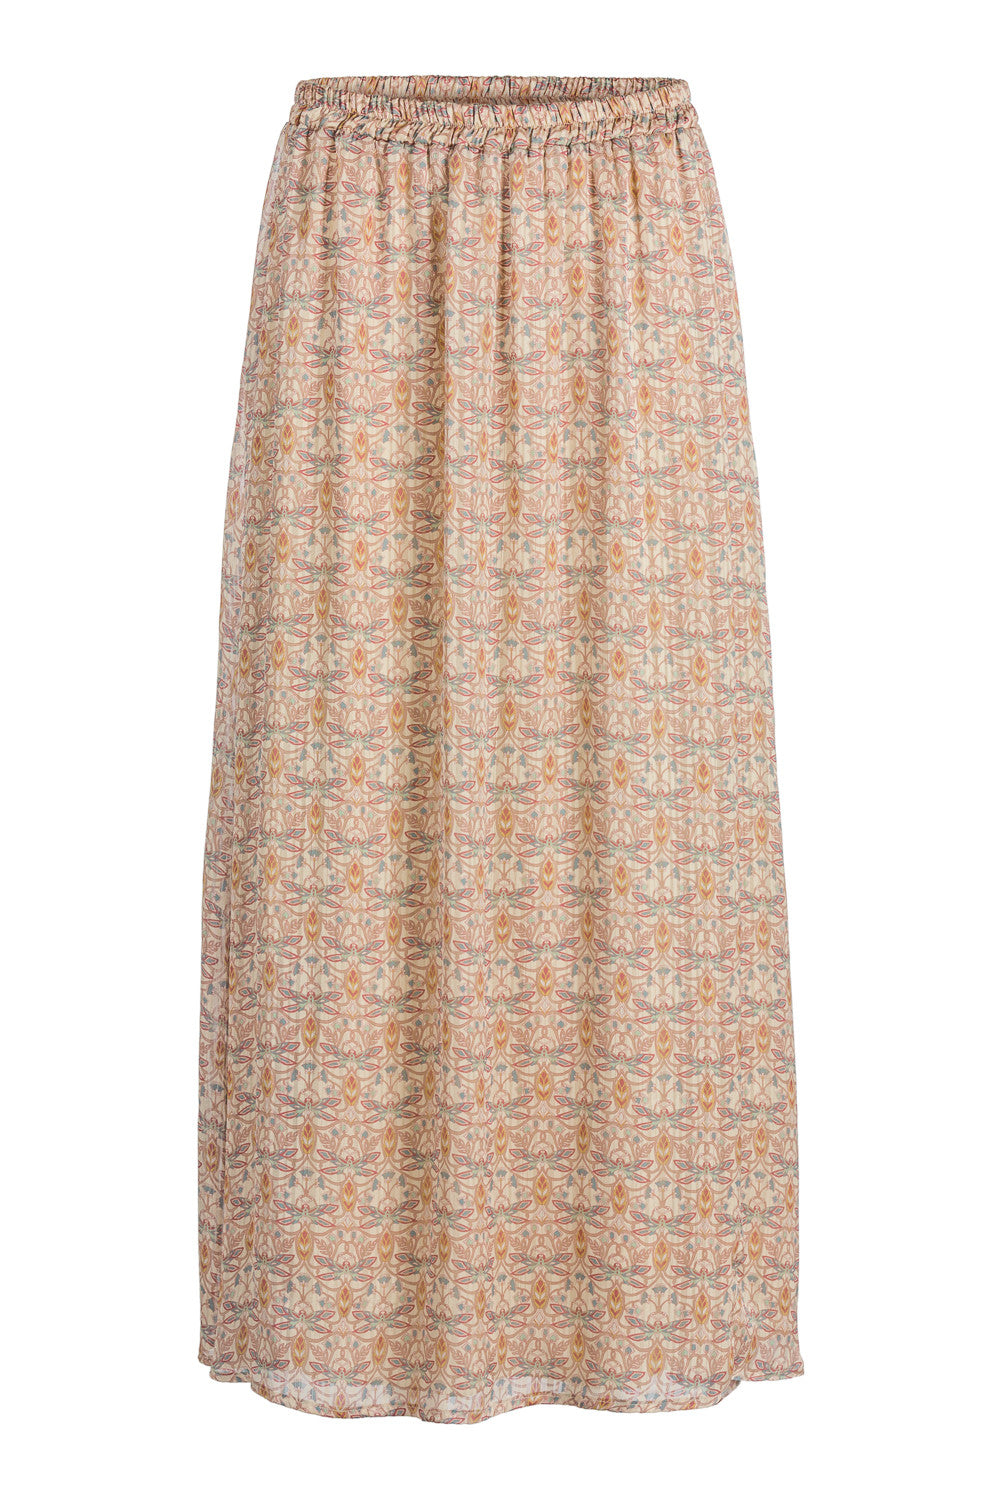 By-Bar - pleun print skirt ash rose